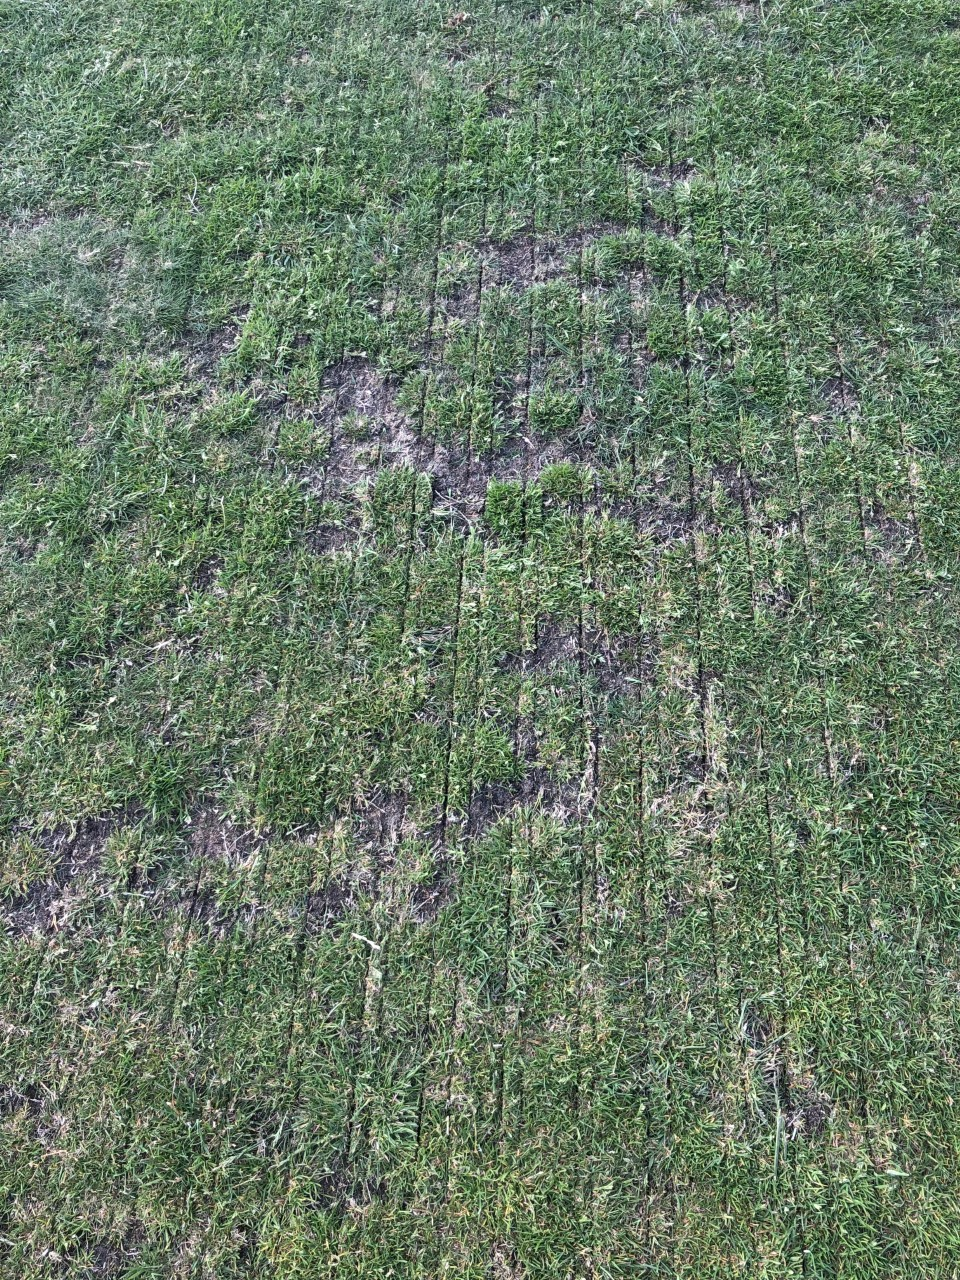 Above you can see the slit grooves made by the double disc seeder.